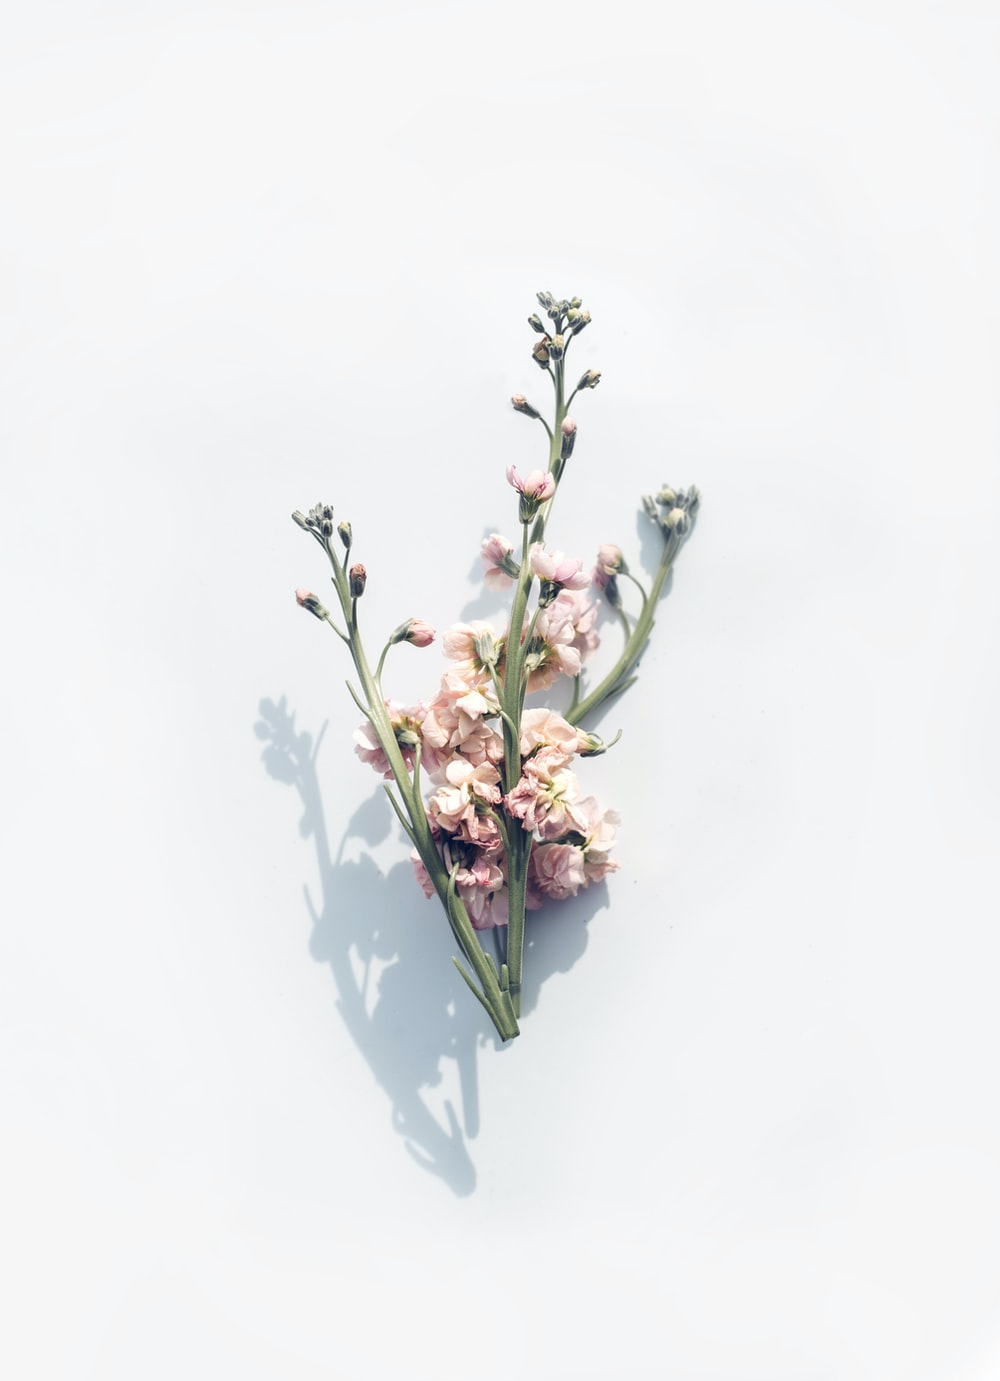 pink flower on white surface